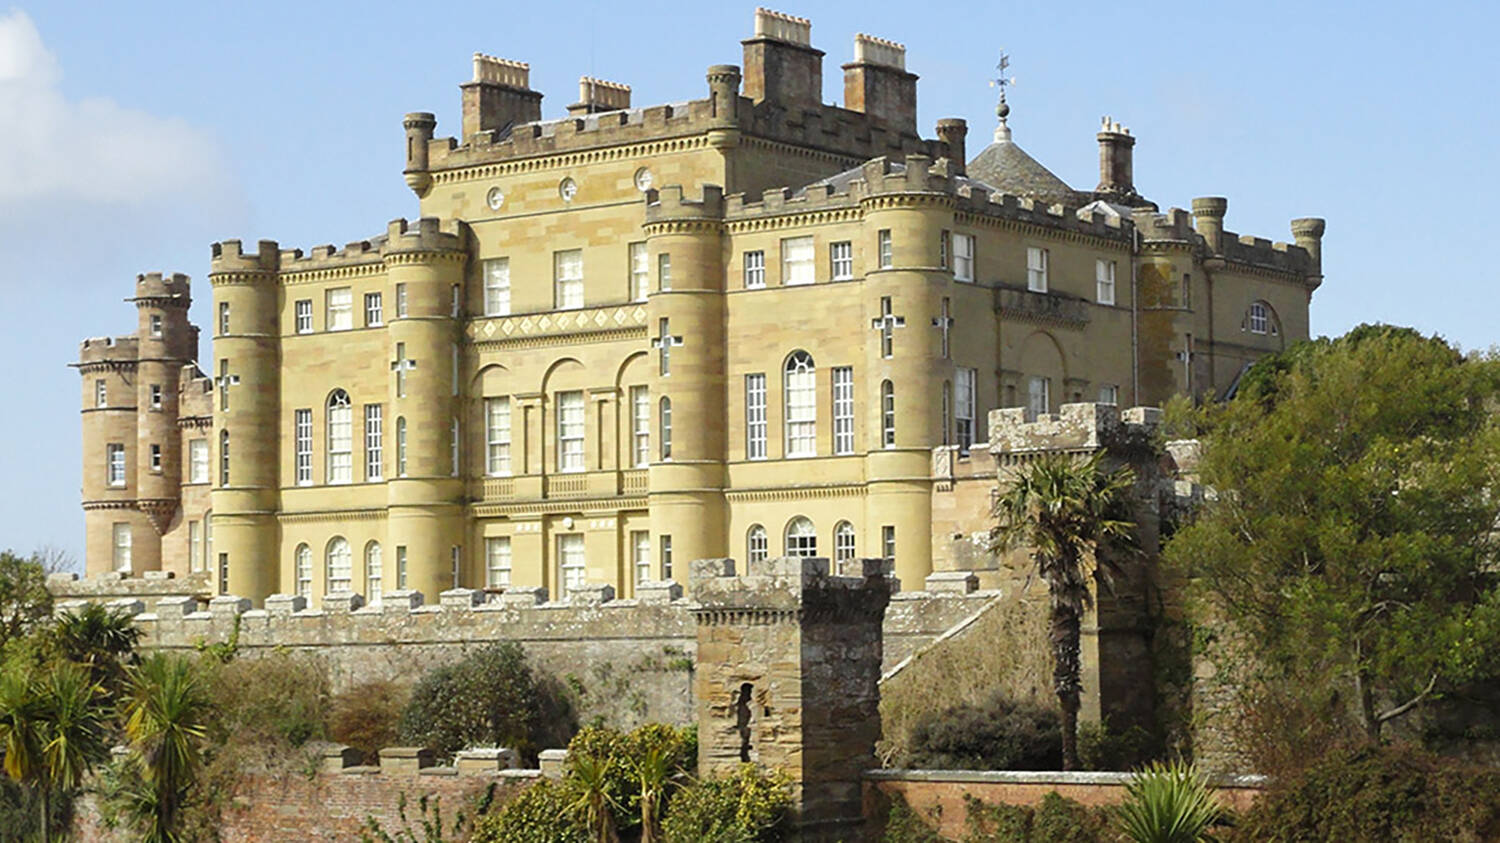 A close-up of Culzean Castle seen from the lawn in front.